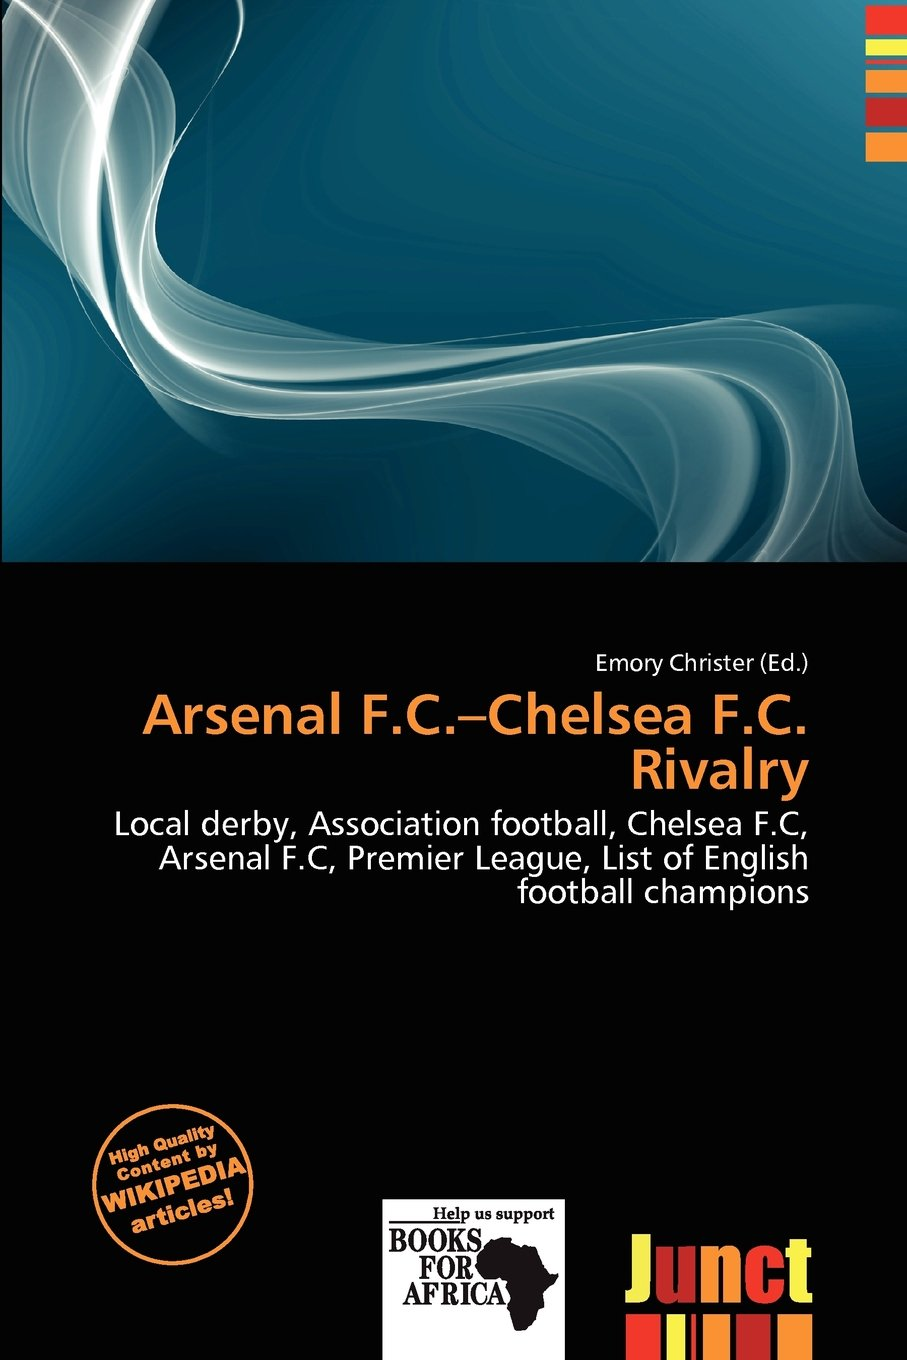 Arsenal F C Chelsea F C Rivalry Christer Emory 9786201252363